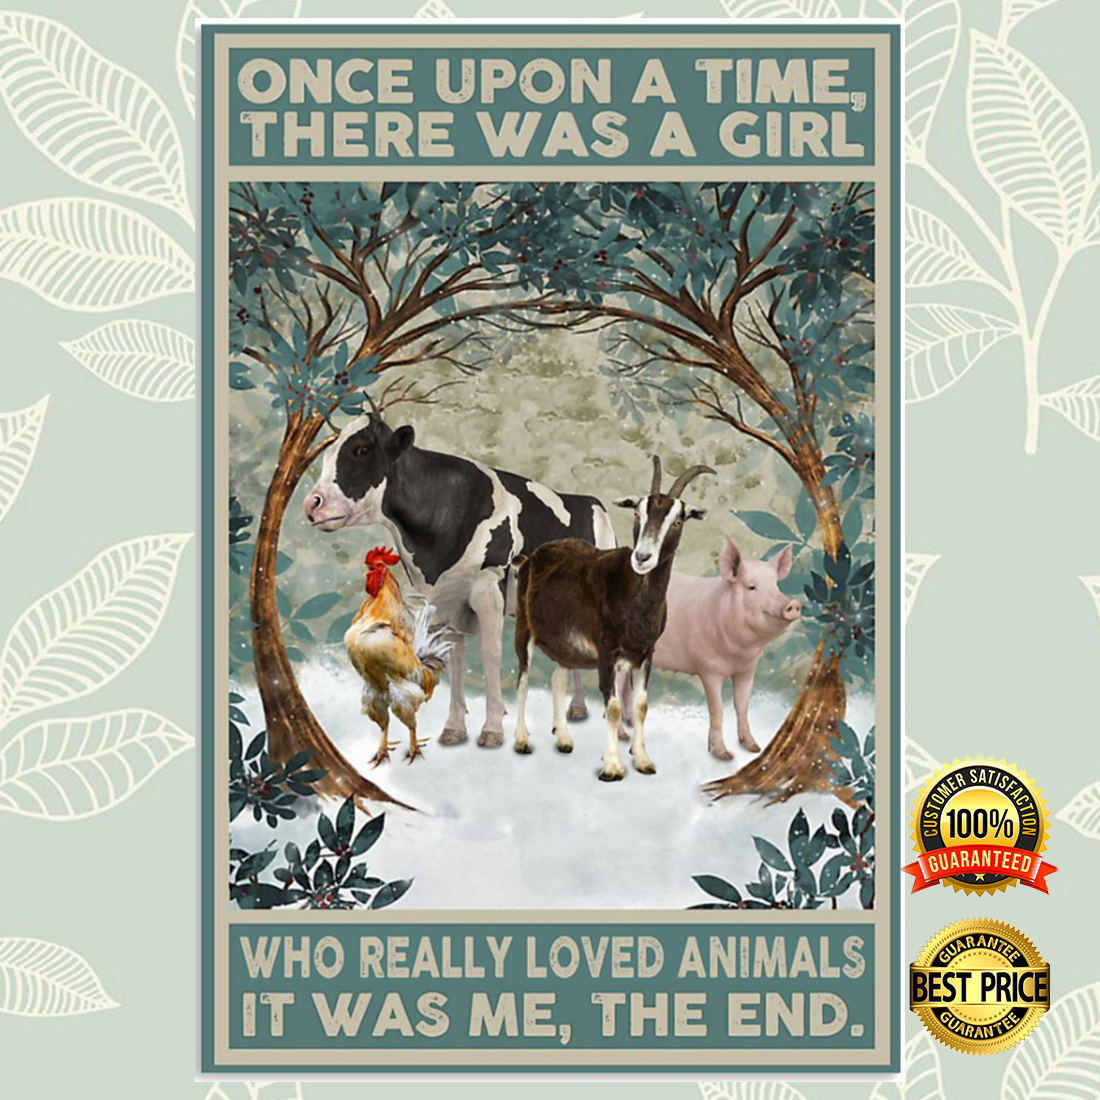 [Cheapest] Once upon a time there was a girl who really loved animals it was me the end poster